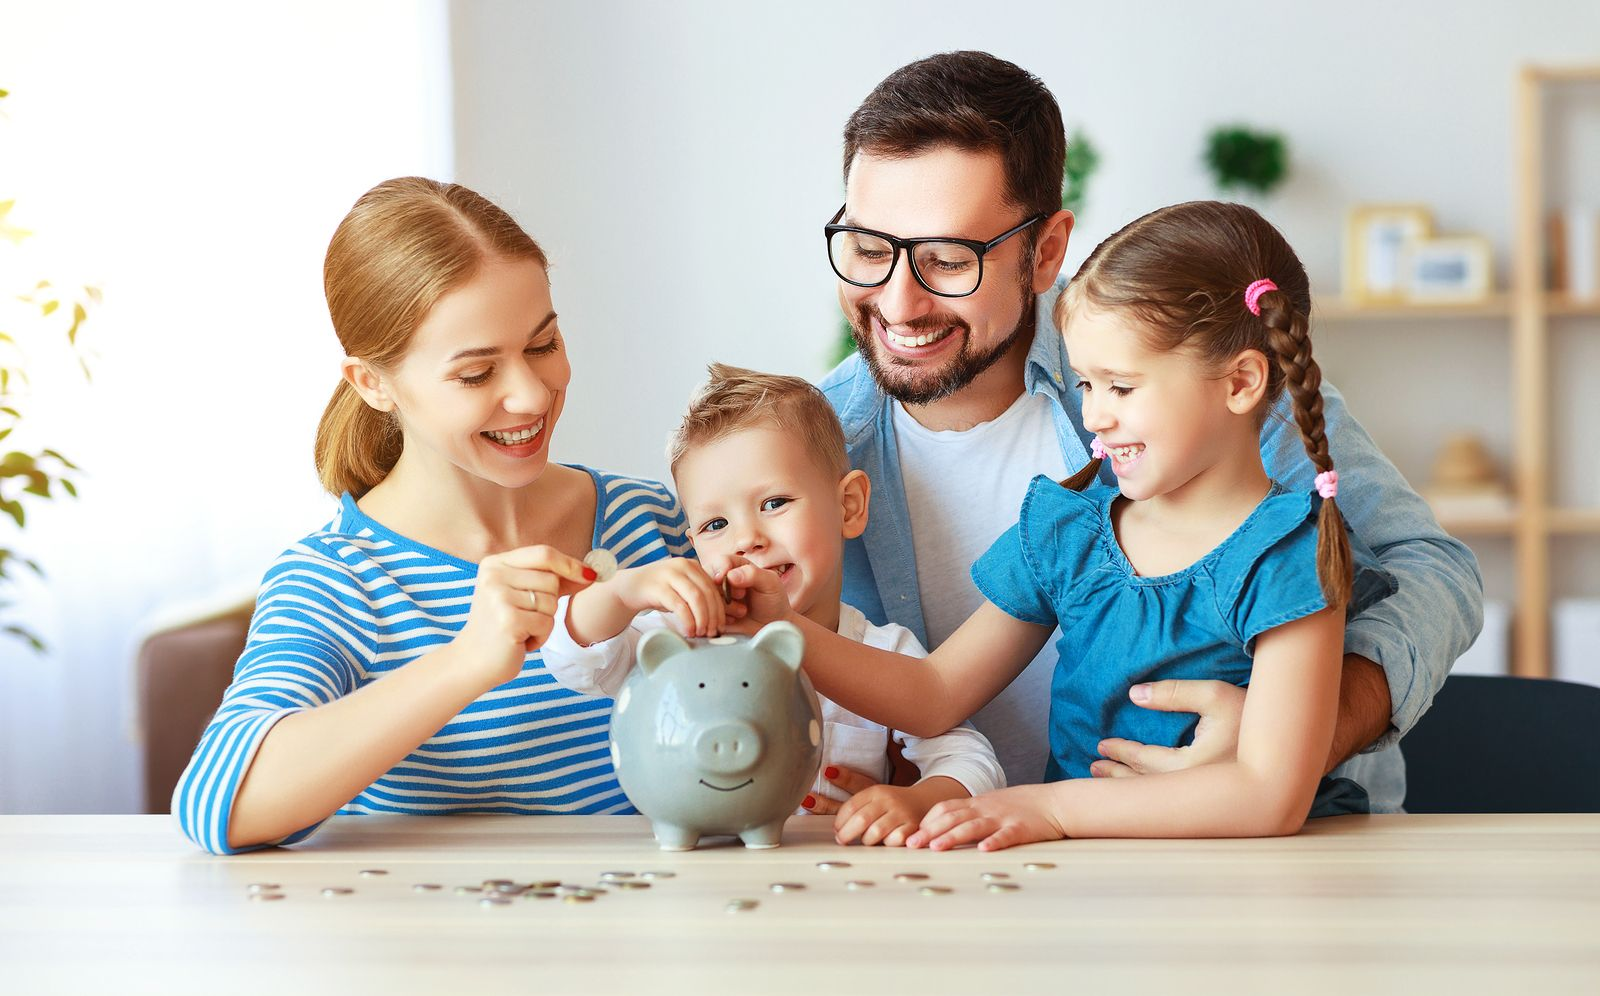 Money Mastery For Kids Five Ways To Make Financial